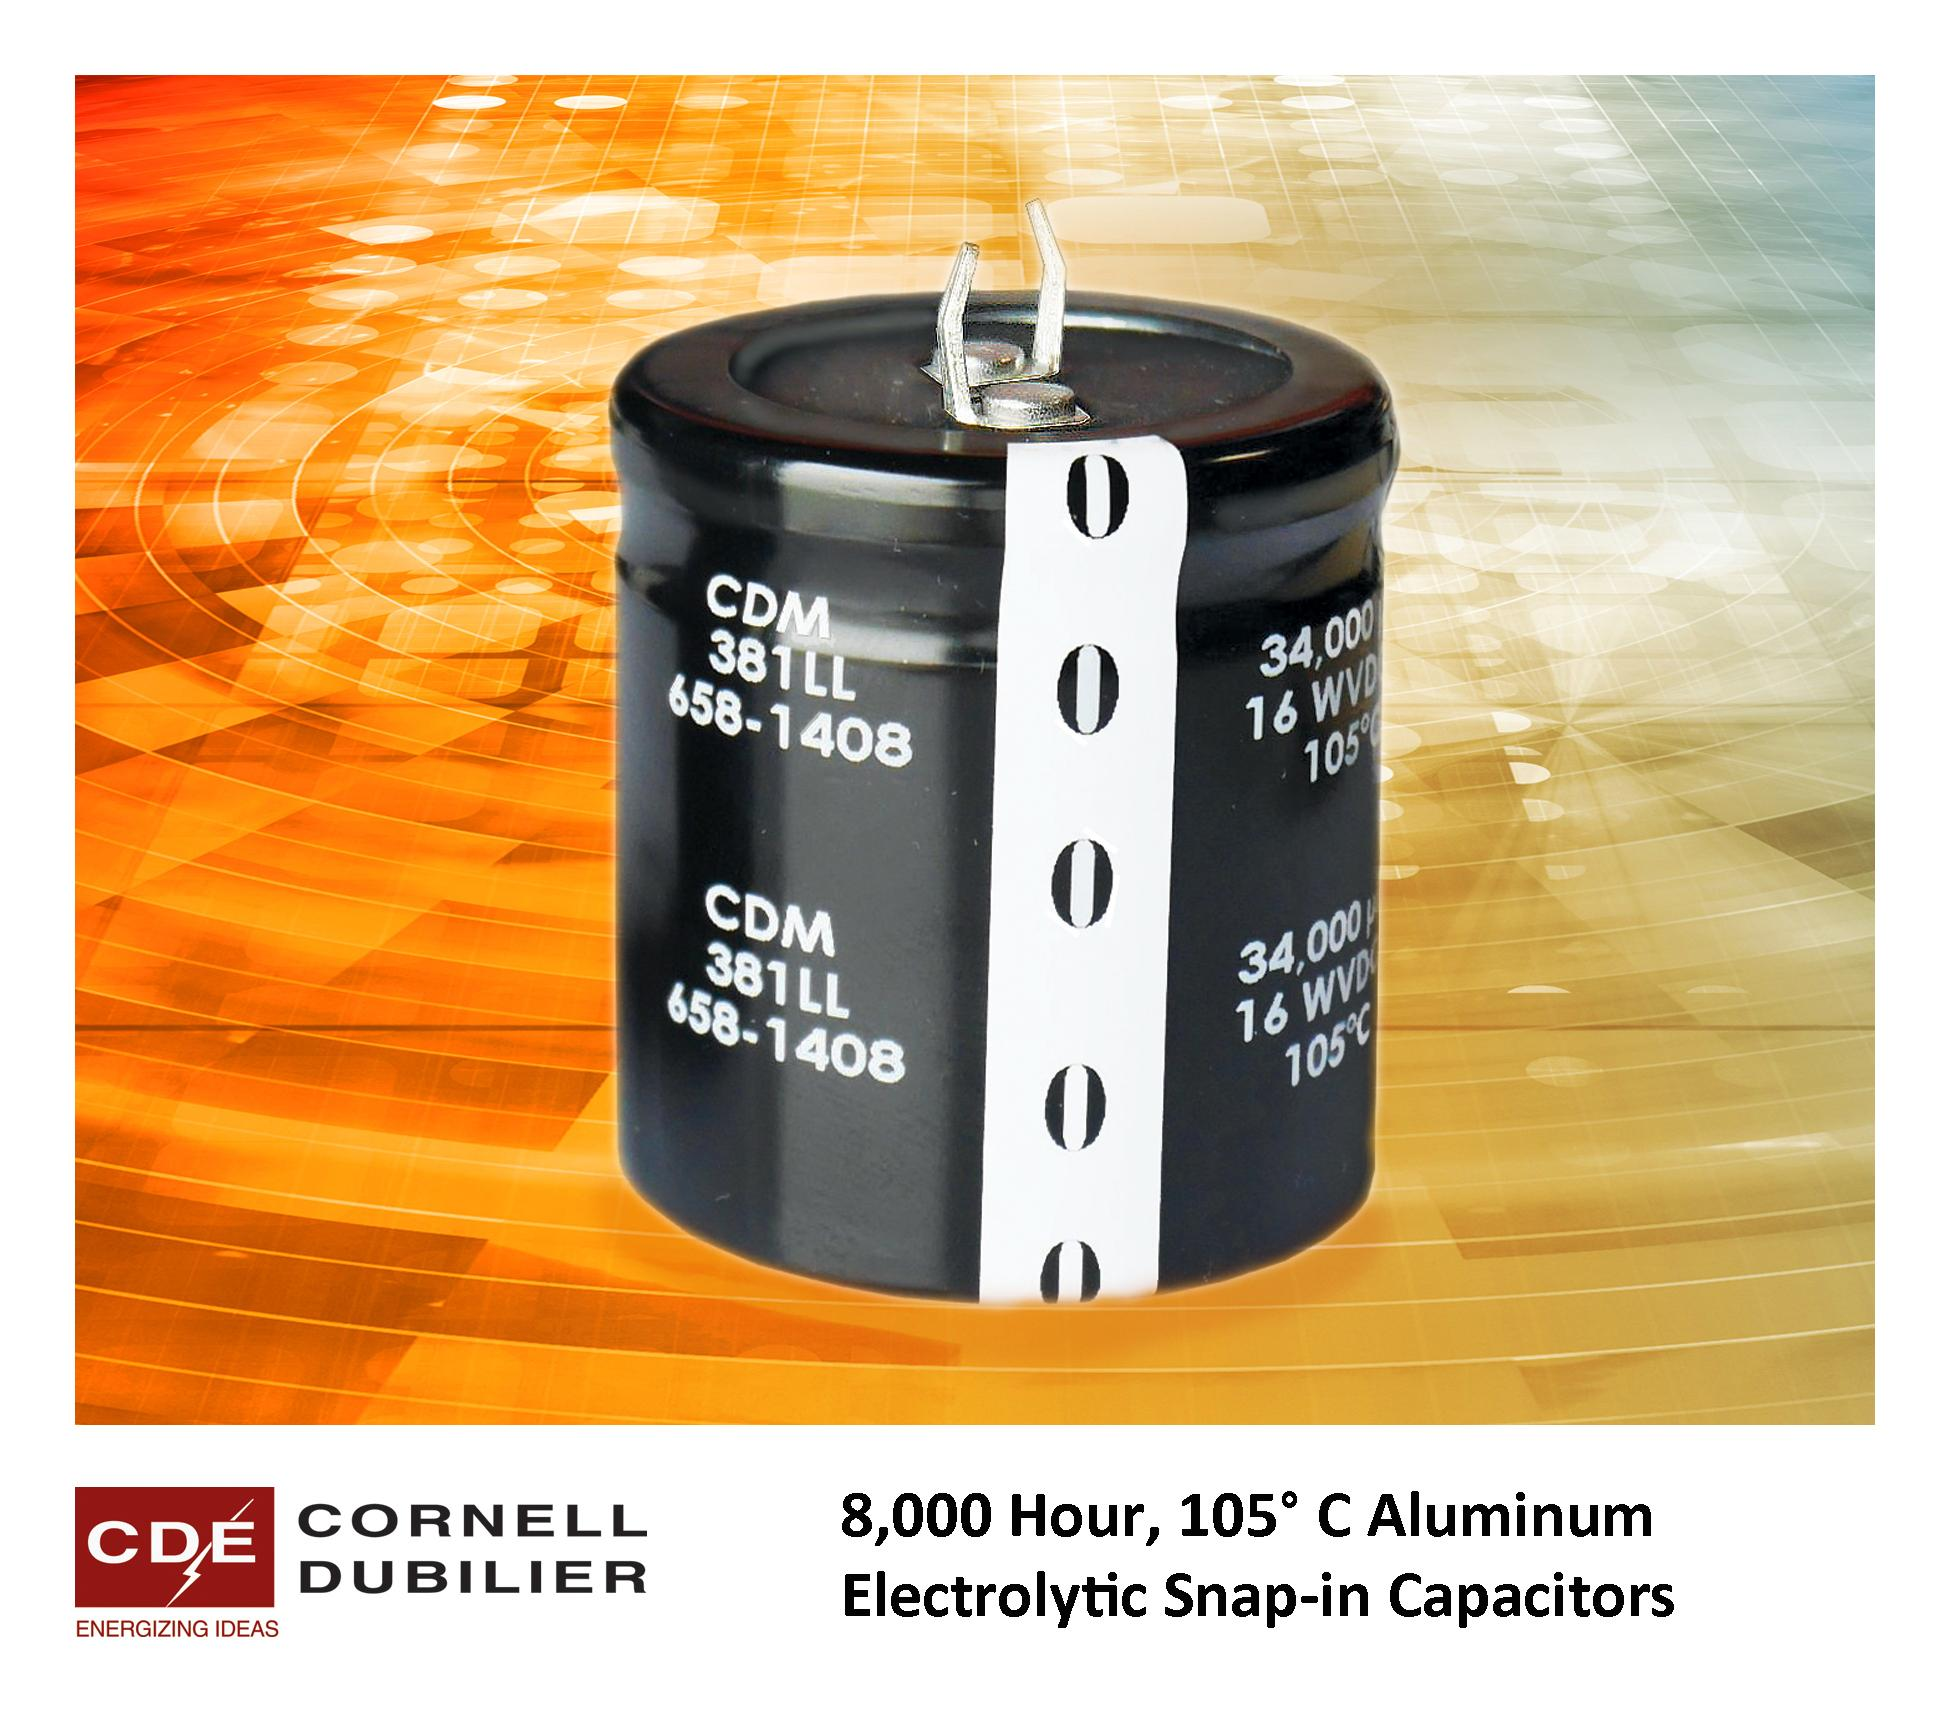 8,000 Hour, 105°C Aluminum Electrolytic Snap-in Capacitors